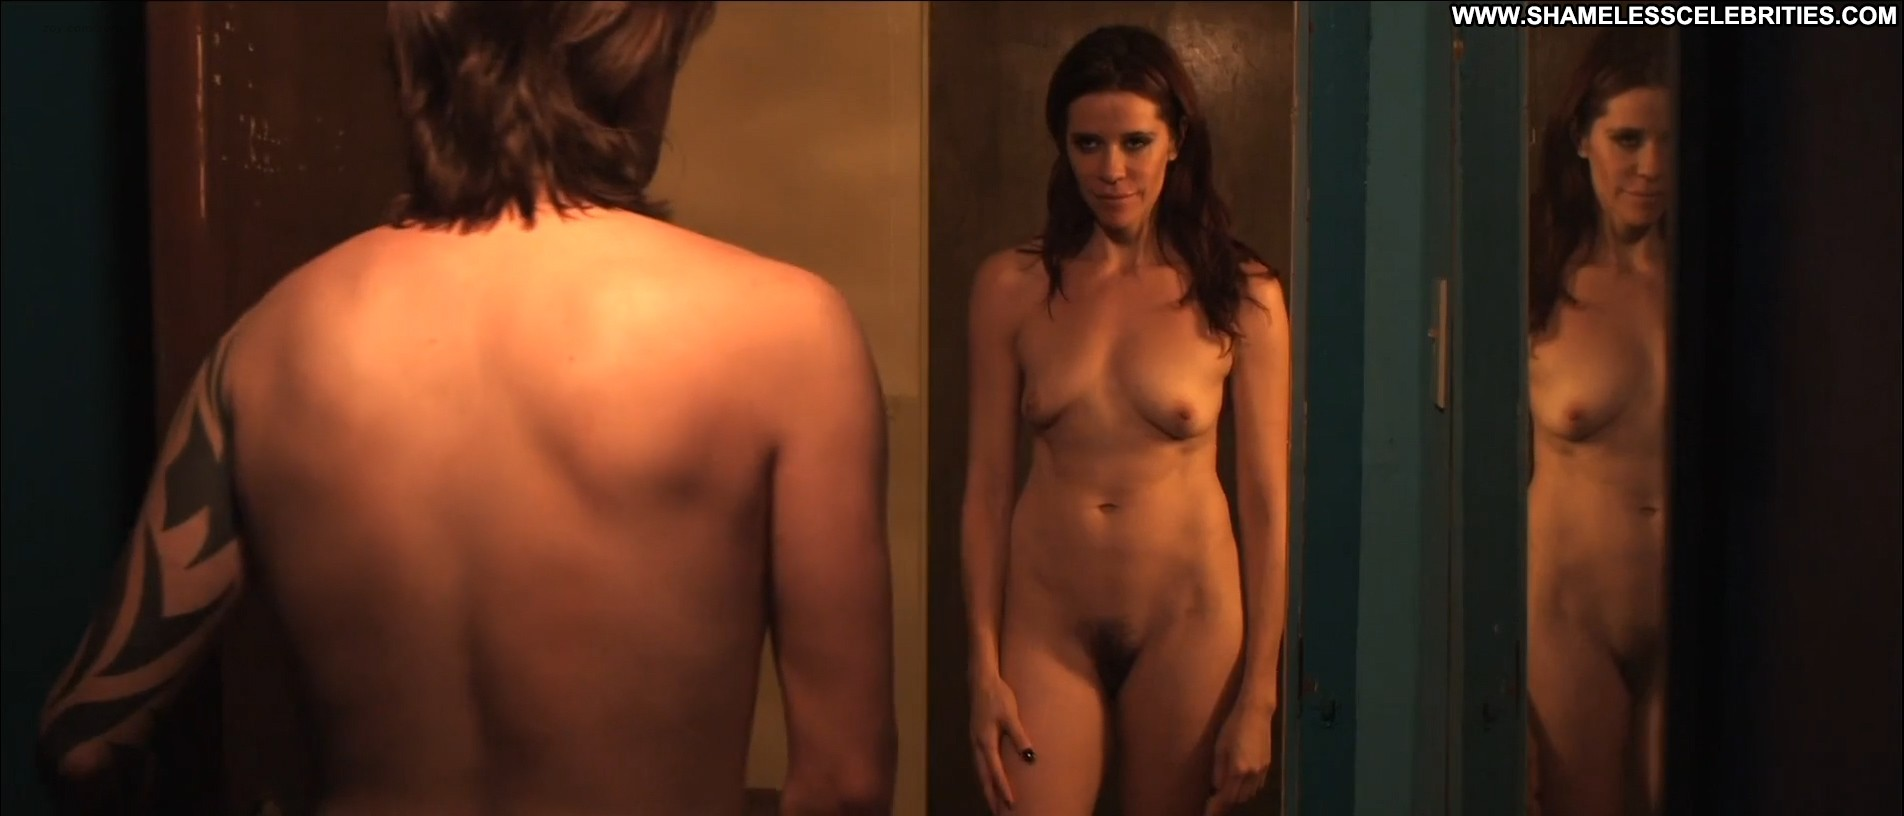 image Sophie rundle nude in episodes with matt le blanc